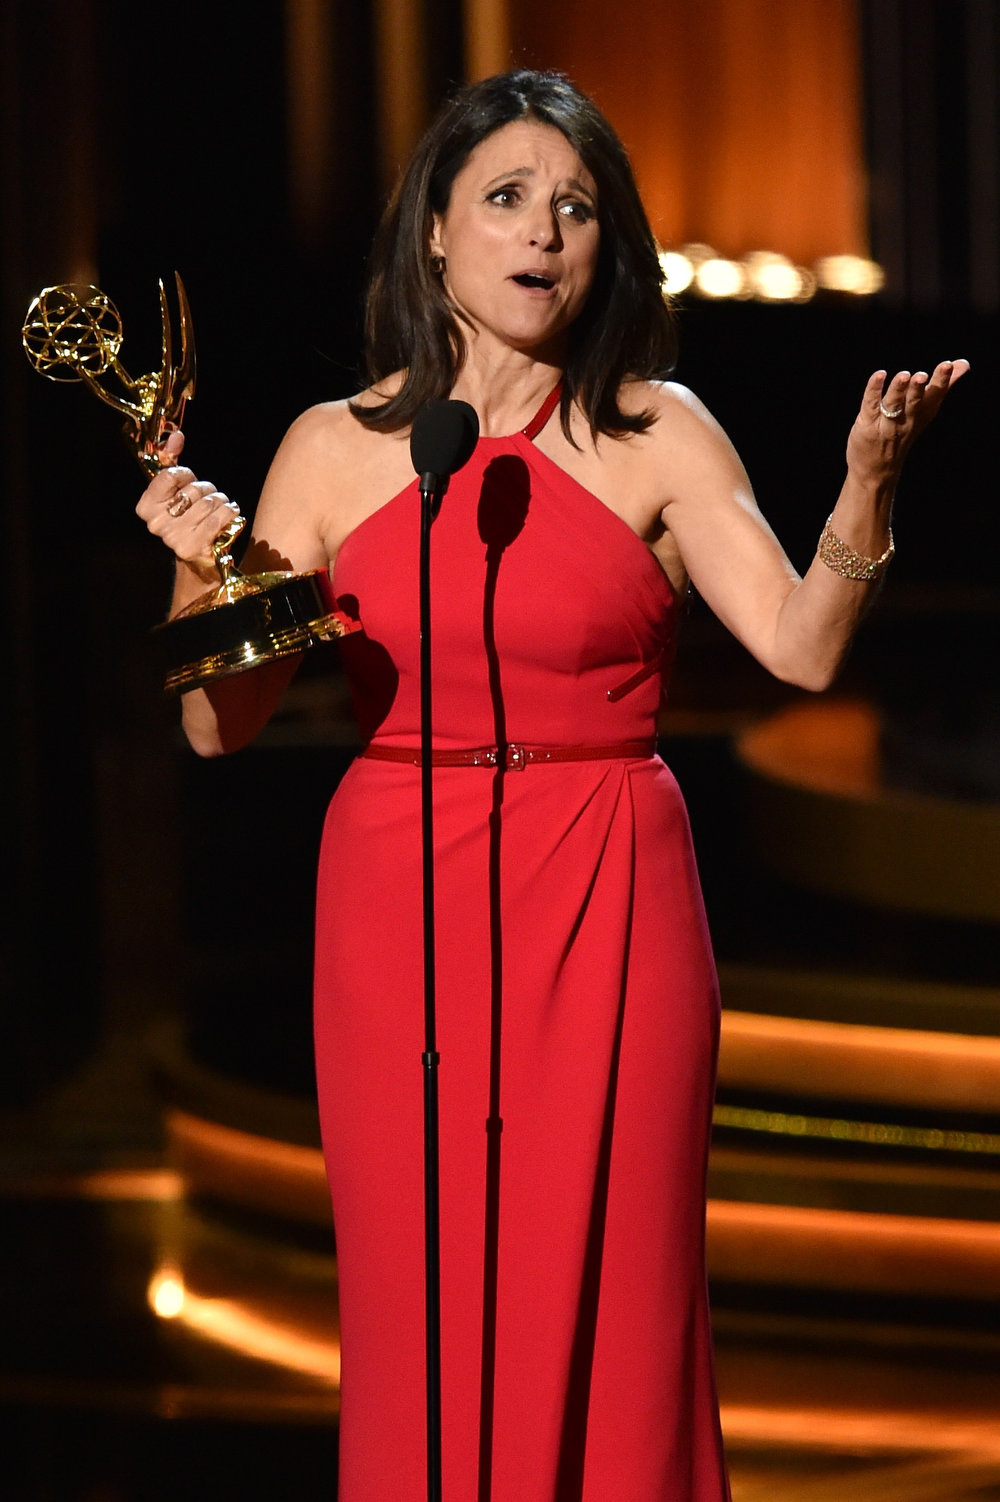 . Actress Julia Louis-Dreyfus accepts Outstanding Lead Actress in a Comedy Series for \'Veep\' onstage at the 66th Annual Primetime Emmy Awards held at Nokia Theatre L.A. Live on August 25, 2014 in Los Angeles, California.  (Photo by Kevin Winter/Getty Images)